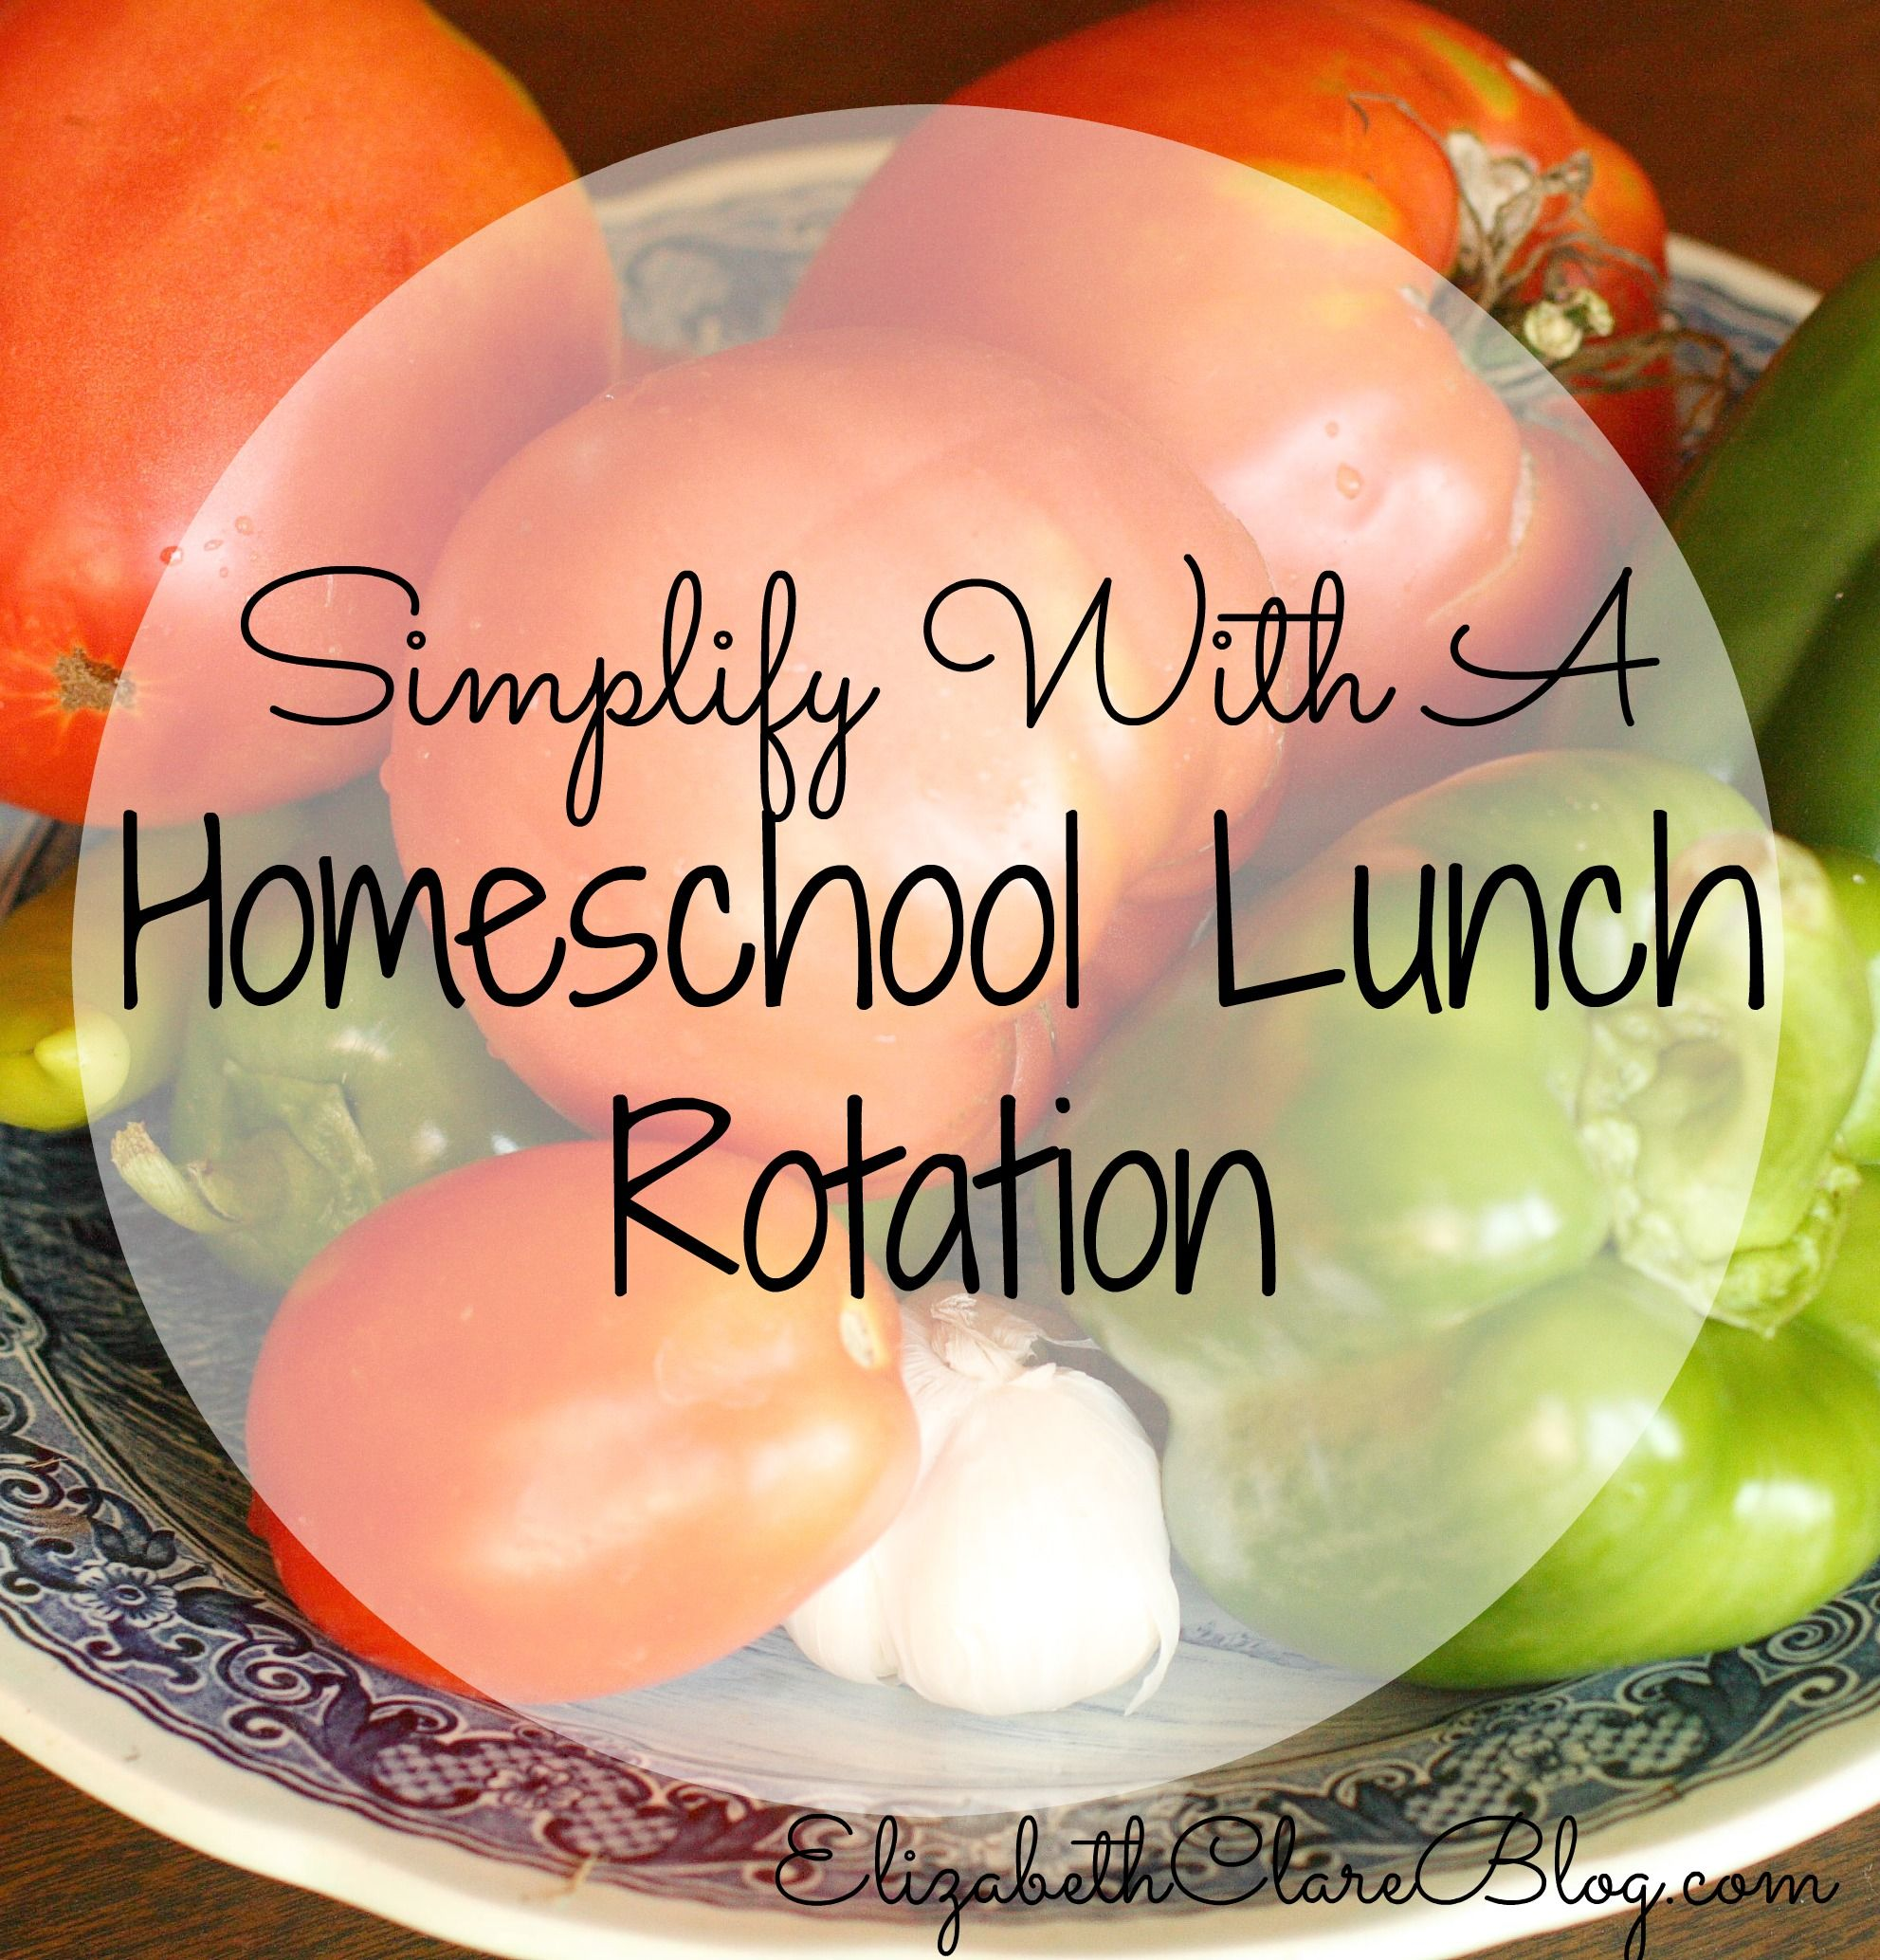 Simple Homeschool Lunch Ideas And Rotation With Images